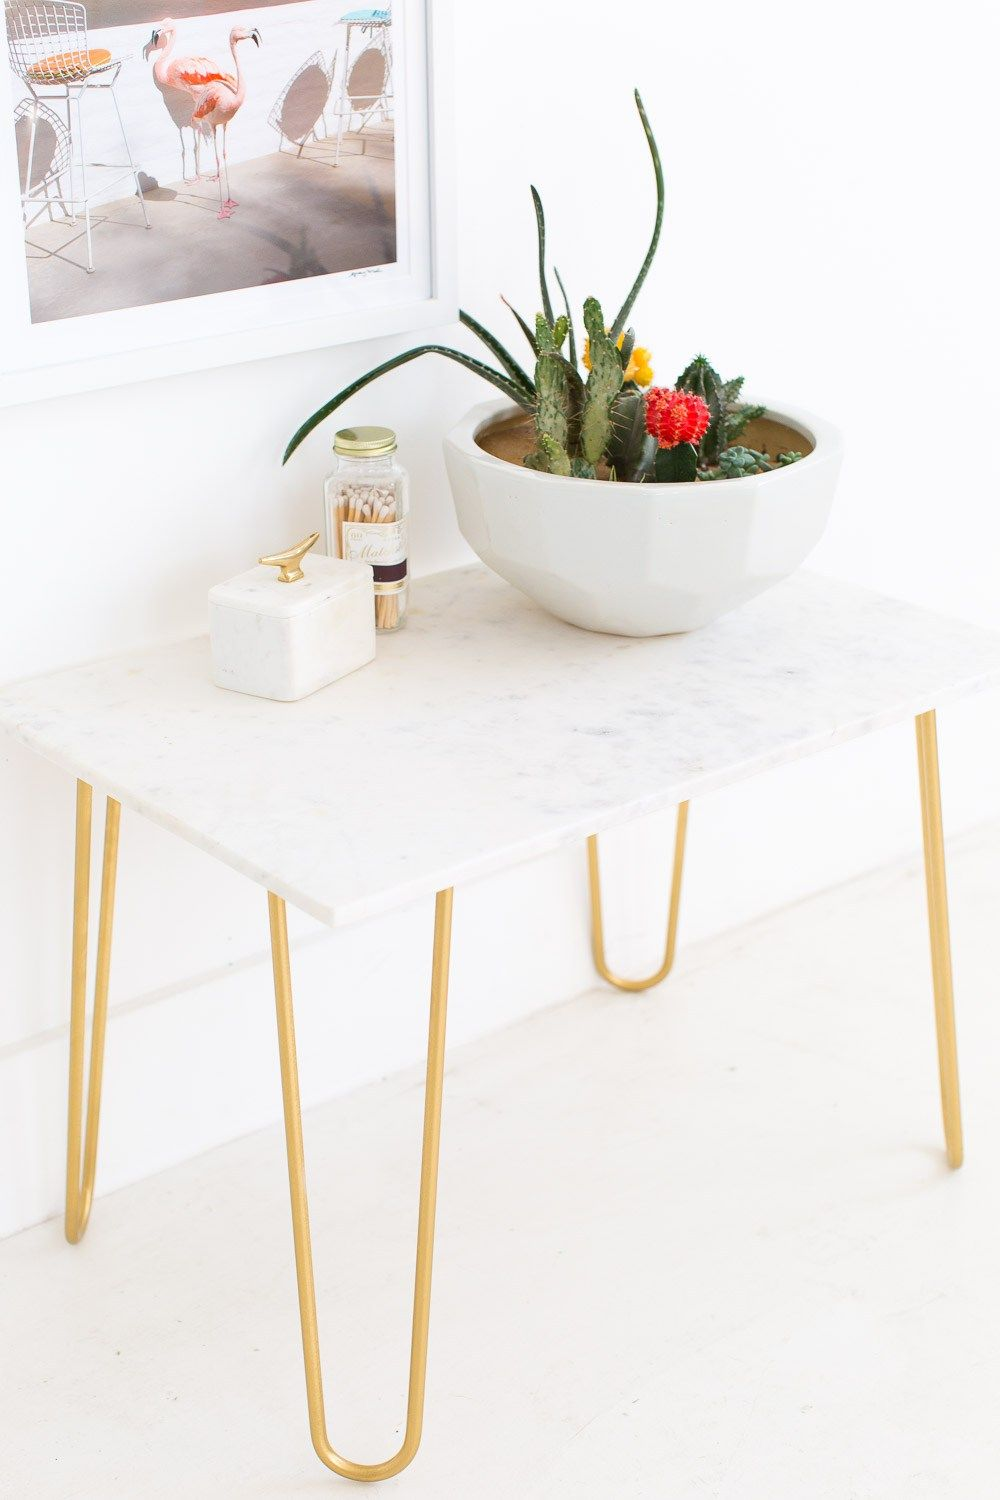 diy marble and gold side table sugar cloth home decor ideas accent legged behind couch with stools half wicker outdoor furniture fine linens metal console black mirror coffee